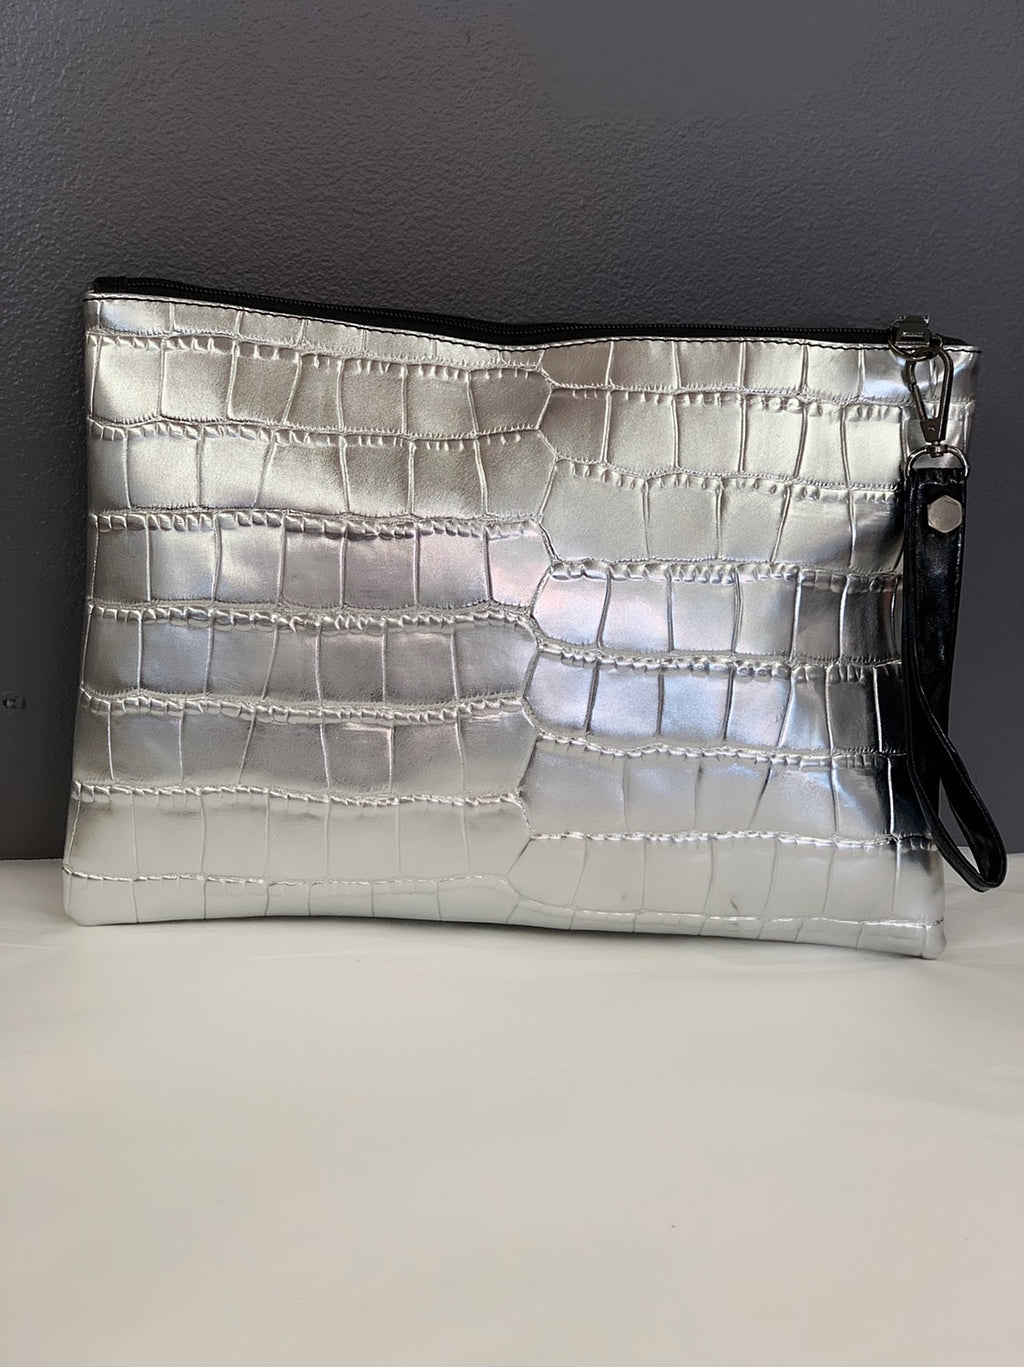 Bria Bella & Co - Metallic Silver Clutch/Crossbody